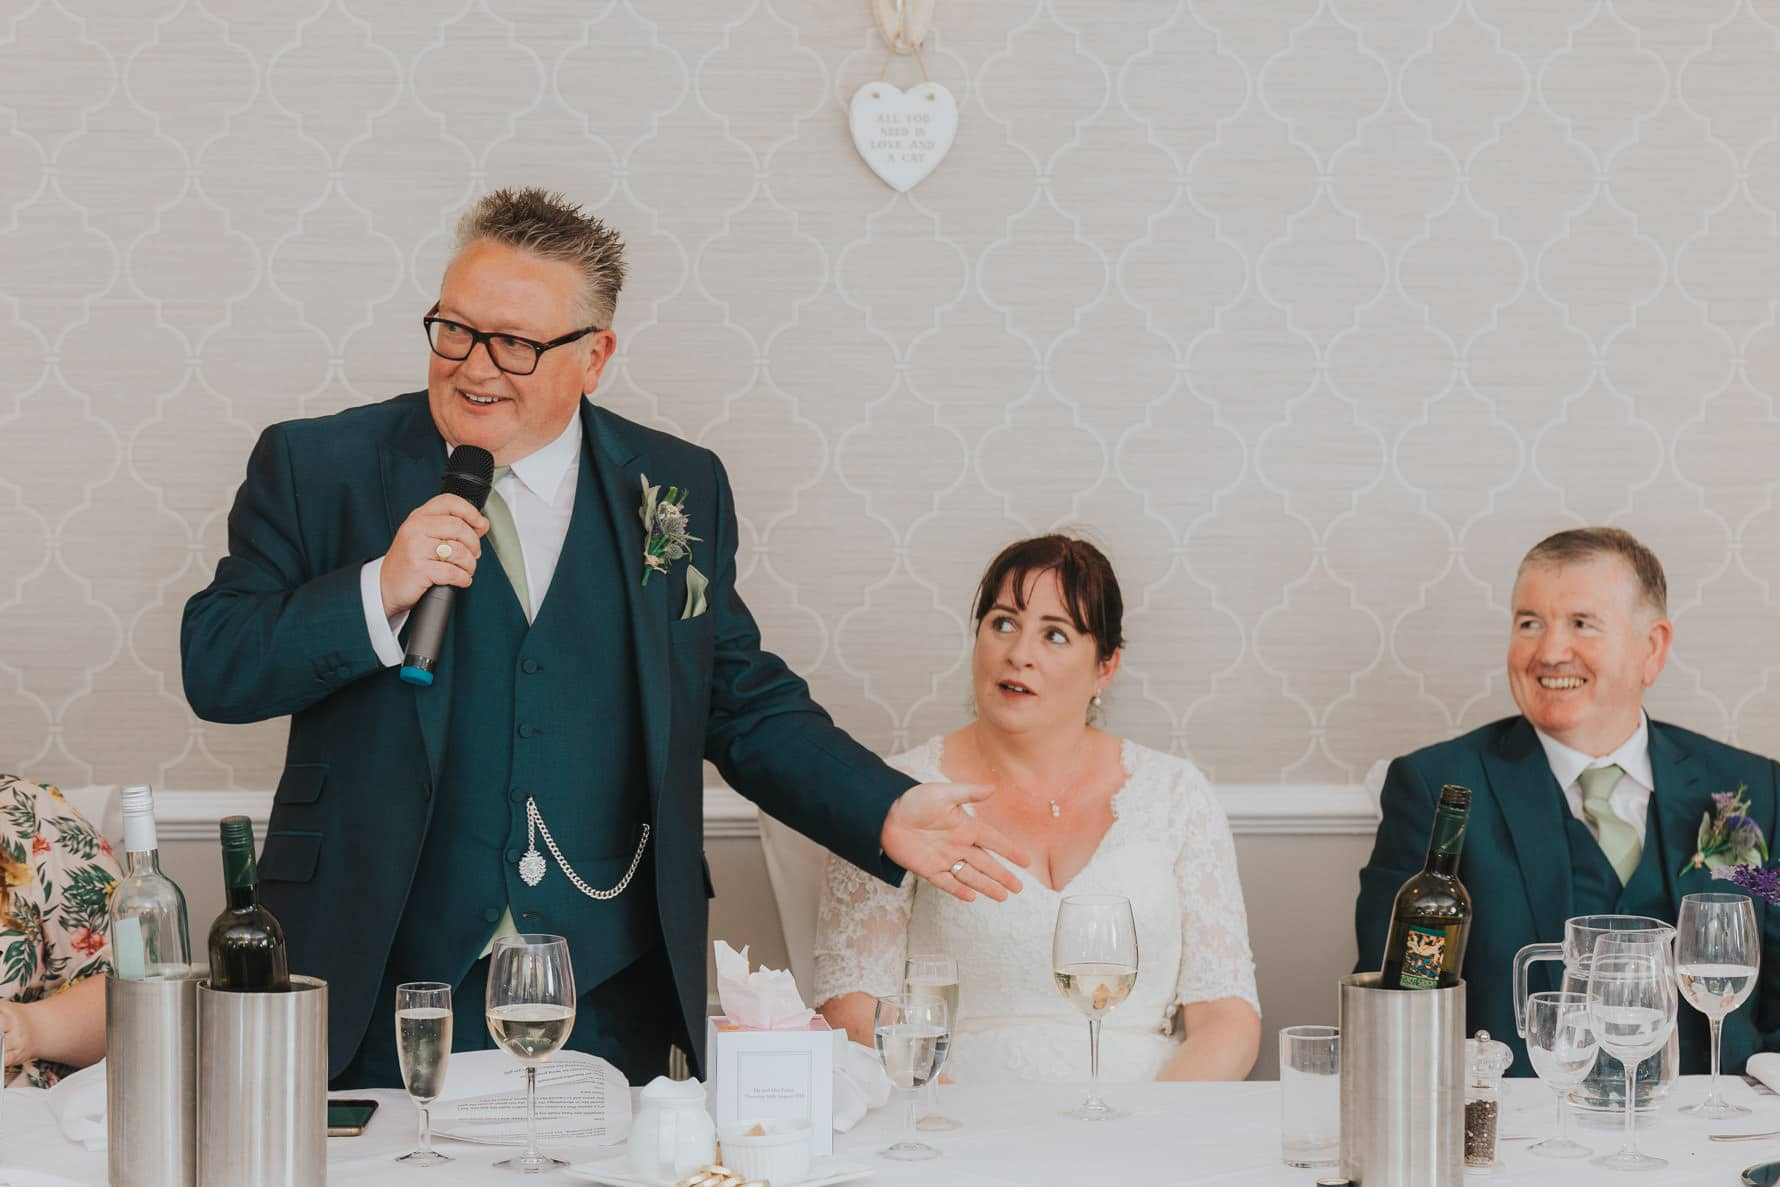 Groom giving his wedding speech at the normanton park hotel